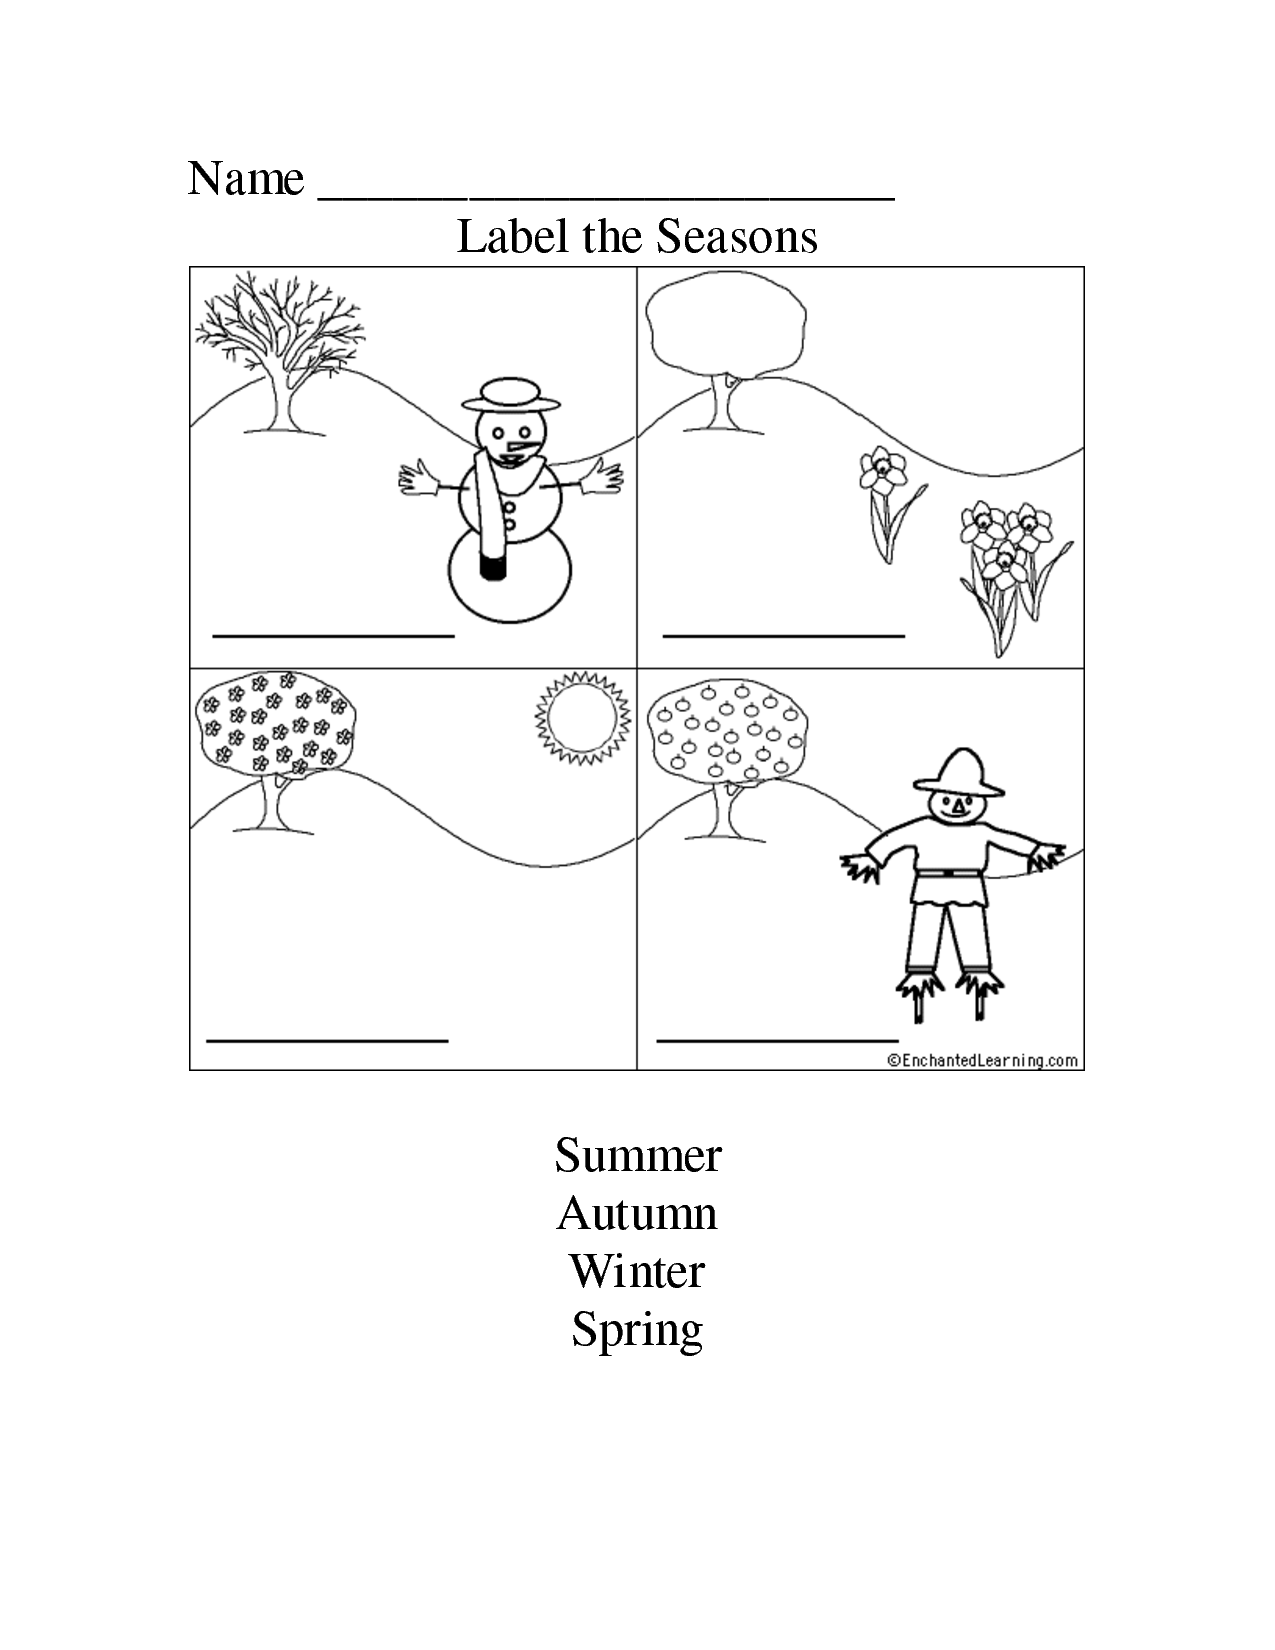 9 Best Images Of Label The Season Worksheet